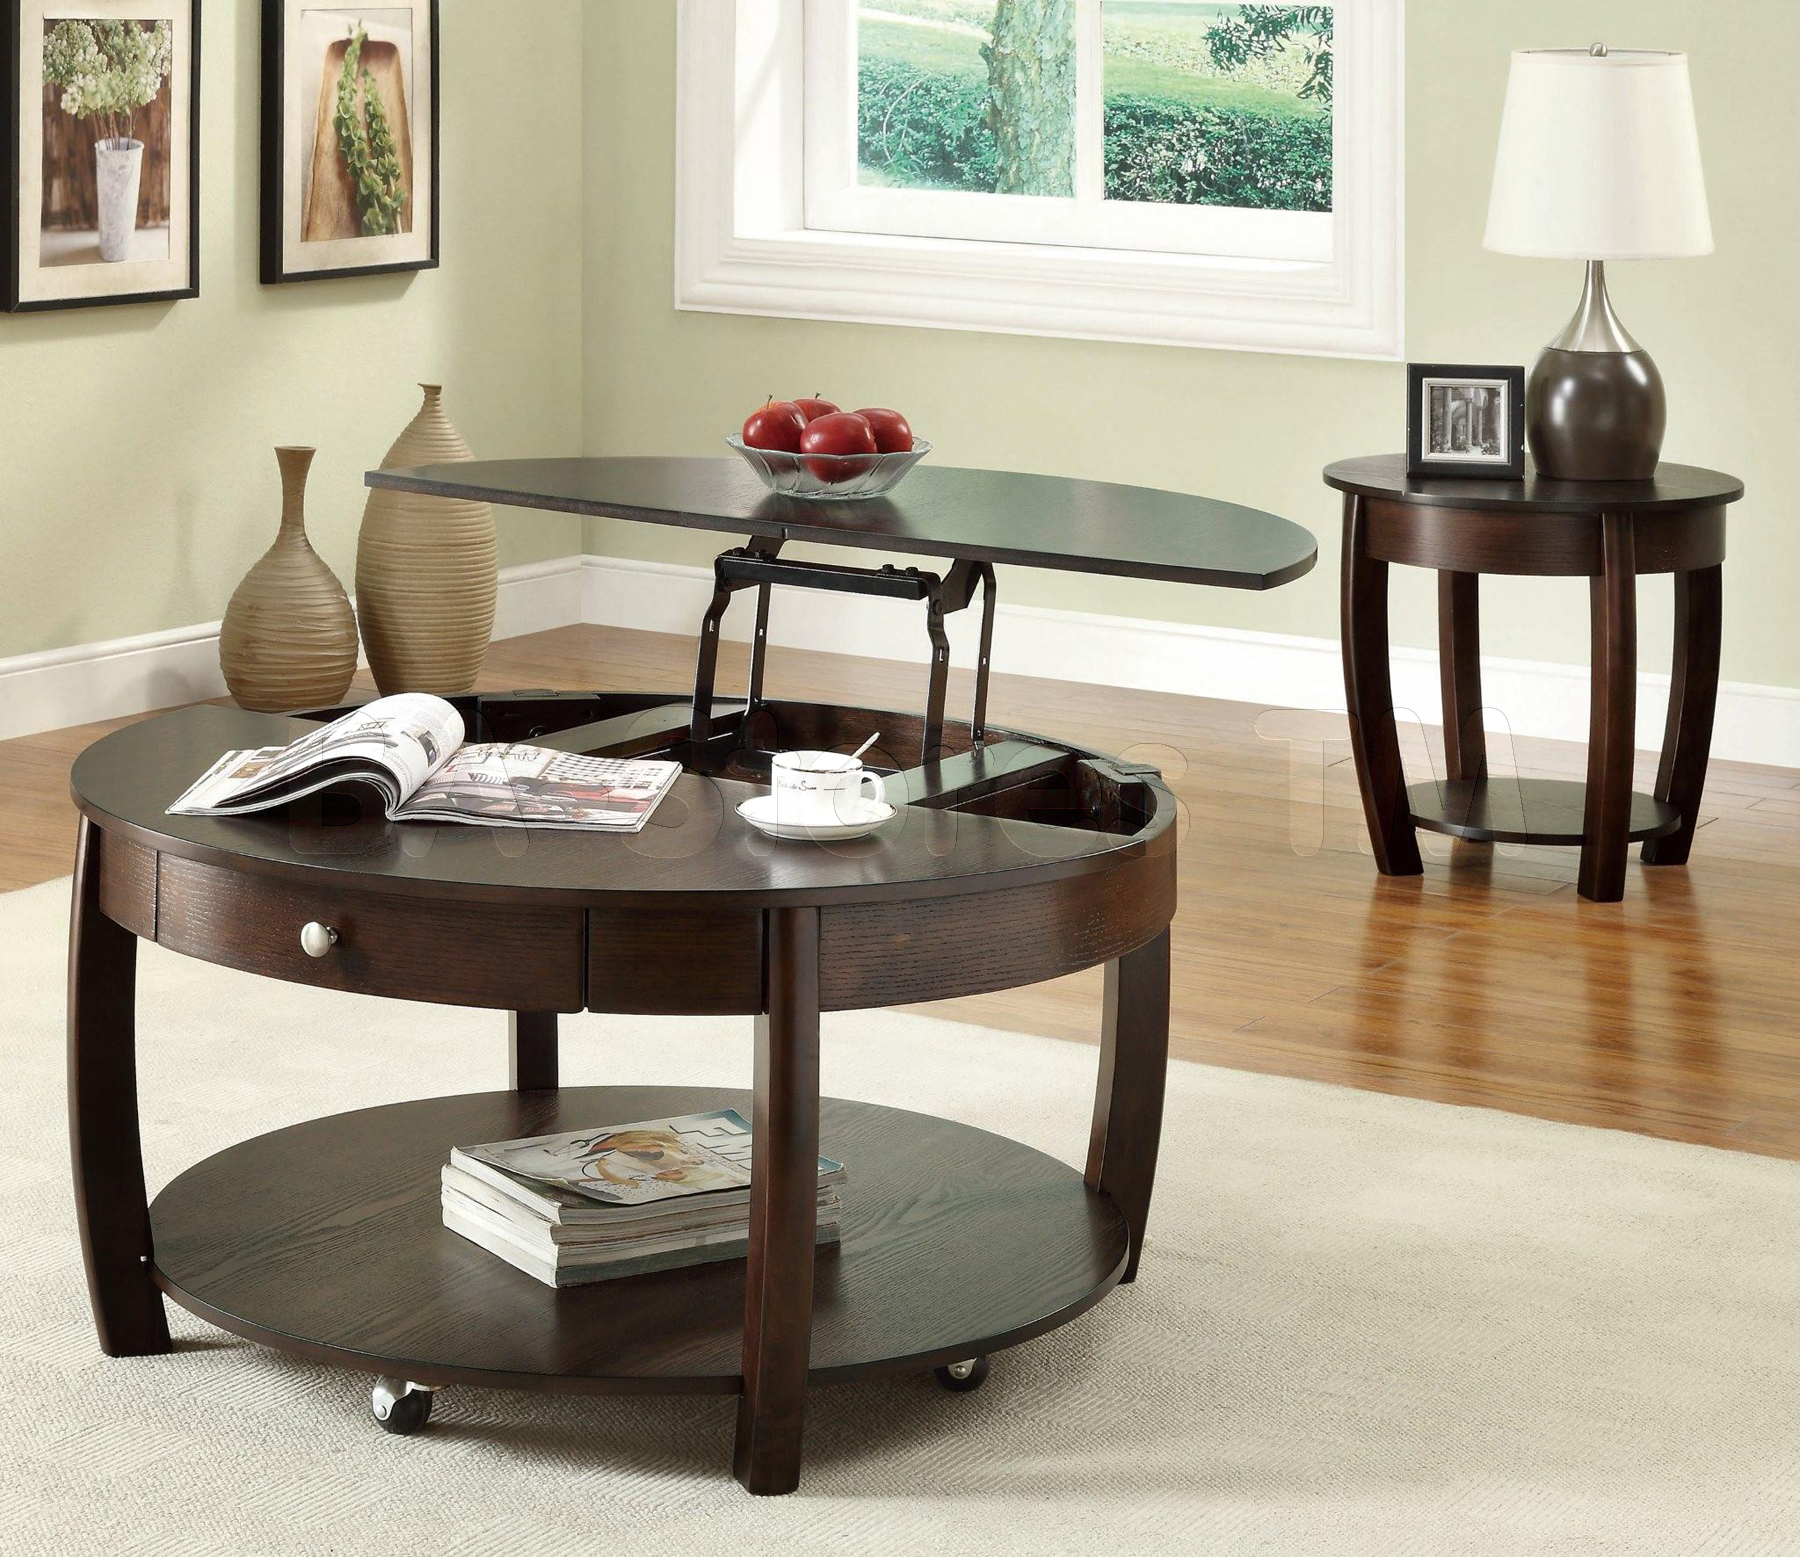 Greenwich Round Coffee Table Choice Of Size: Lift Top Coffee Tables Design Images Photos Pictures